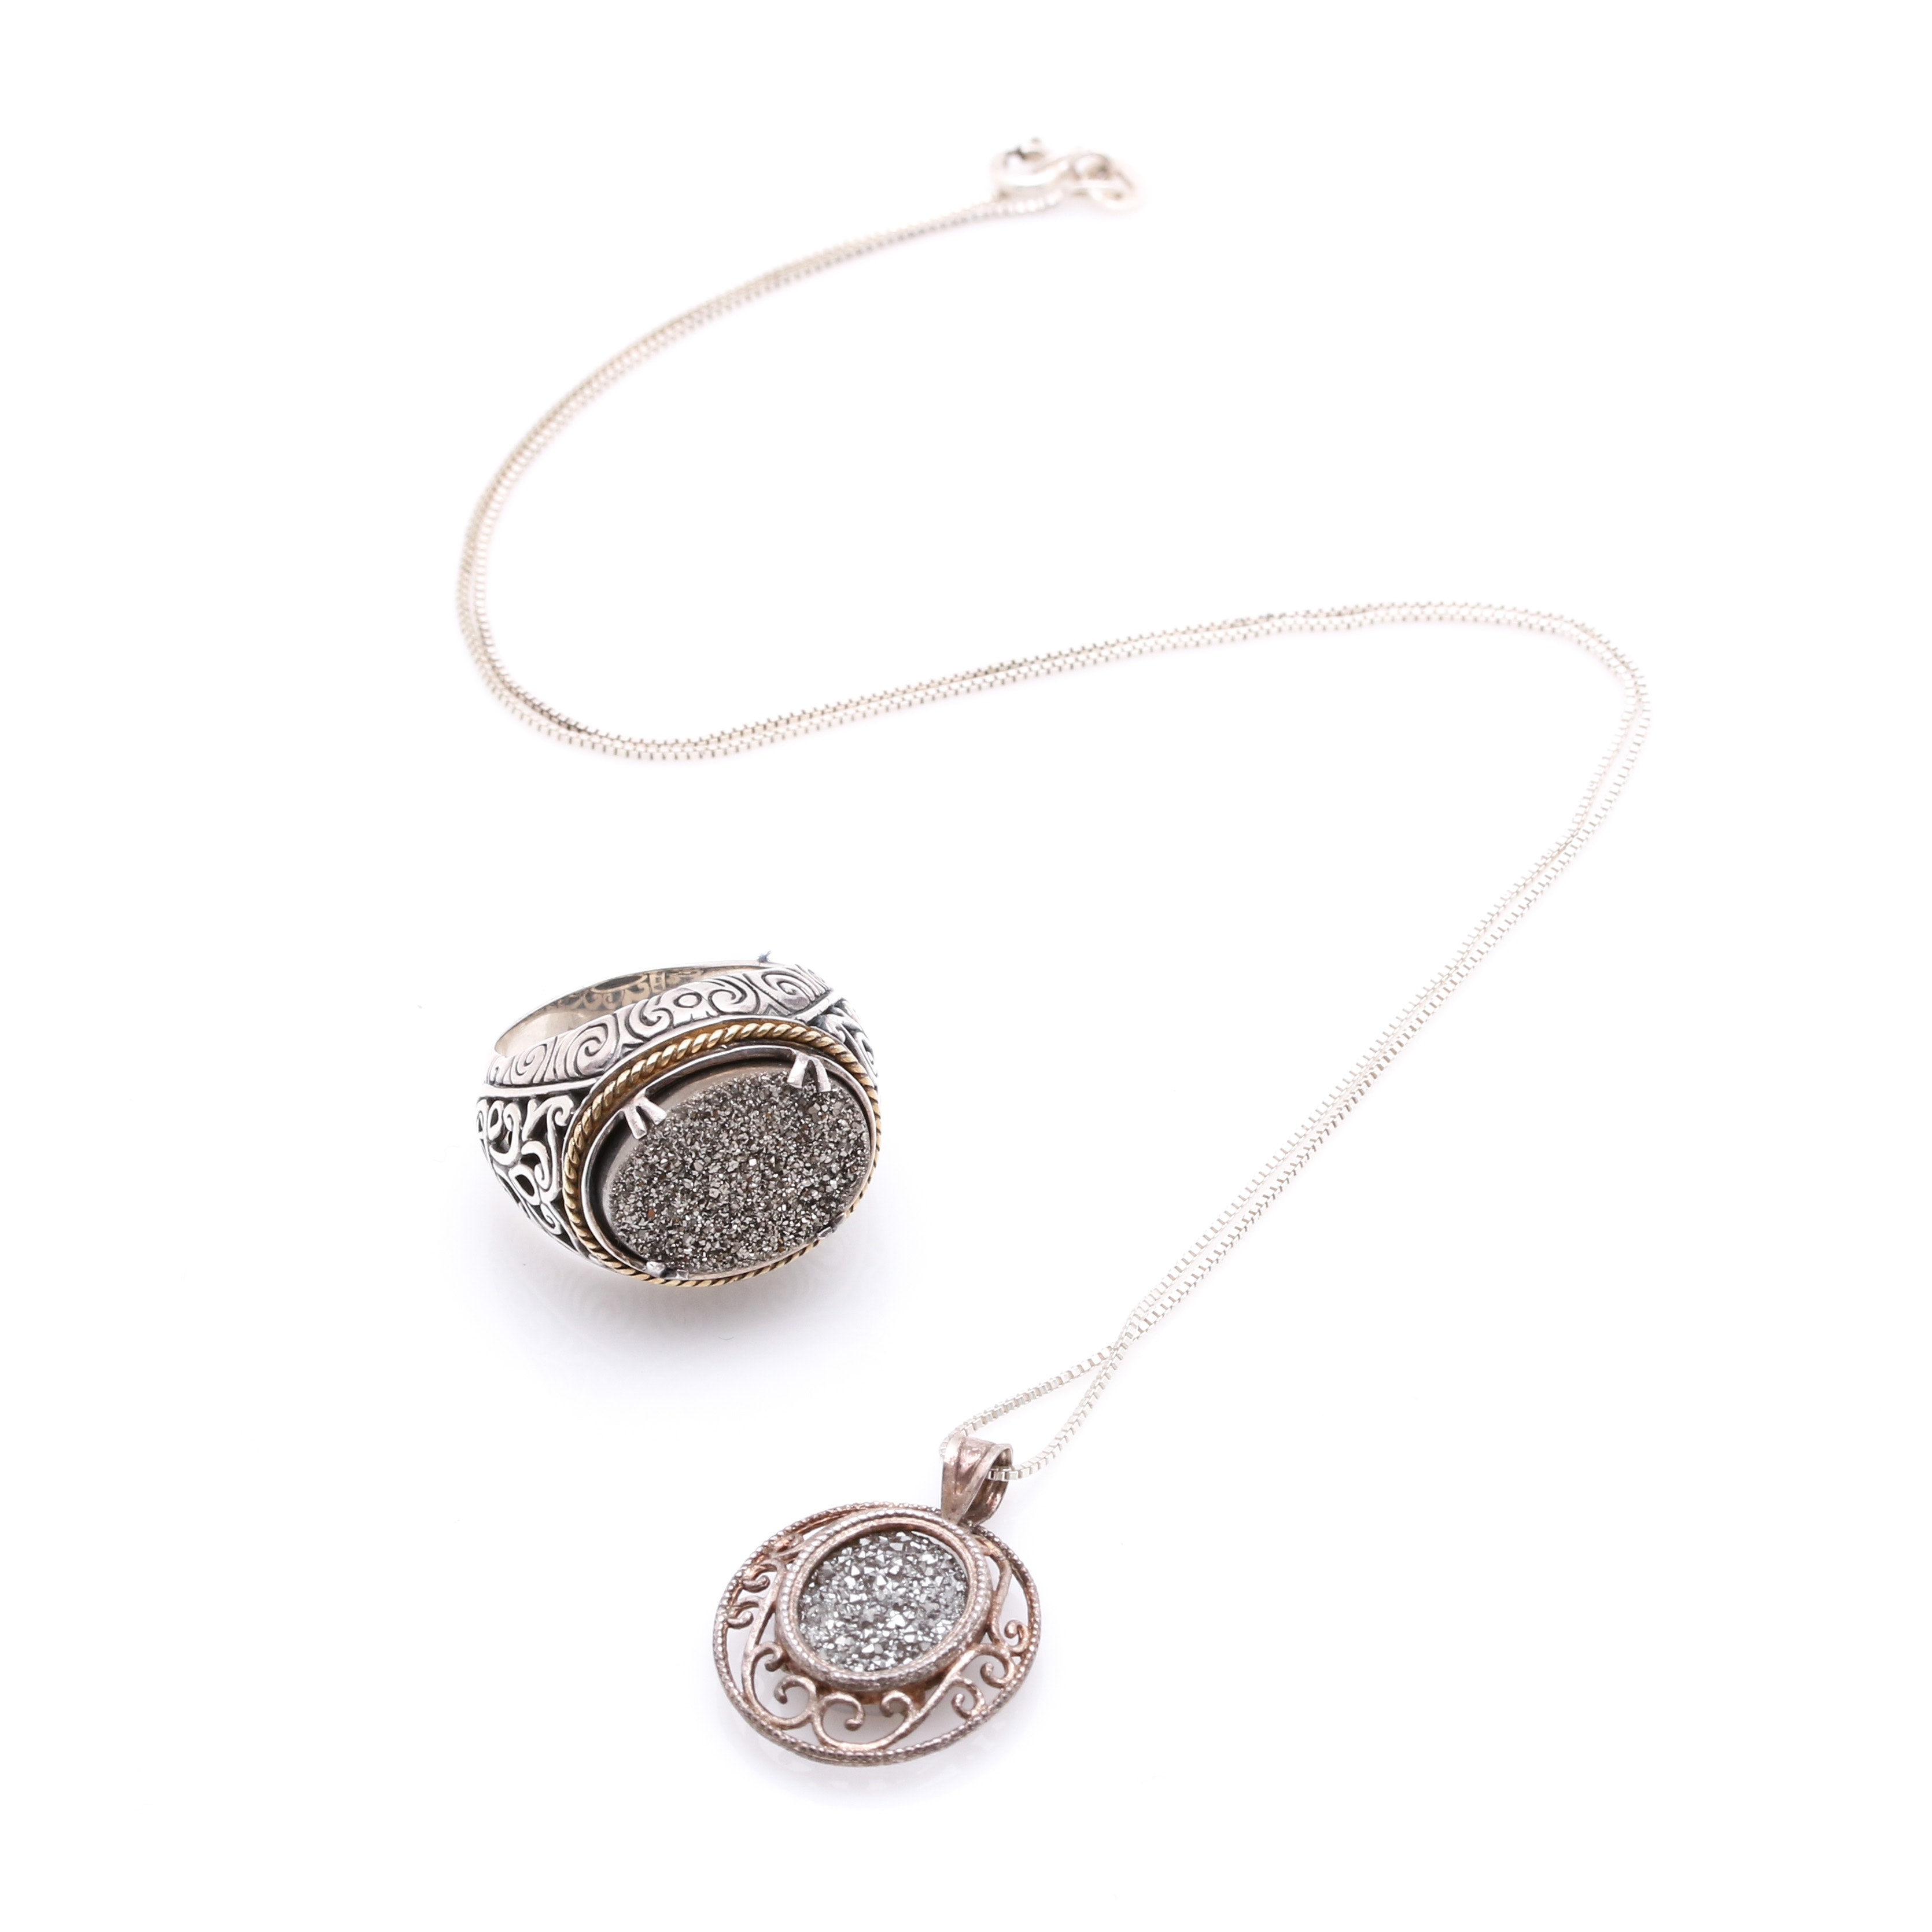 Sterling Silver Necklace and Ring With Coated Druzy Quartz